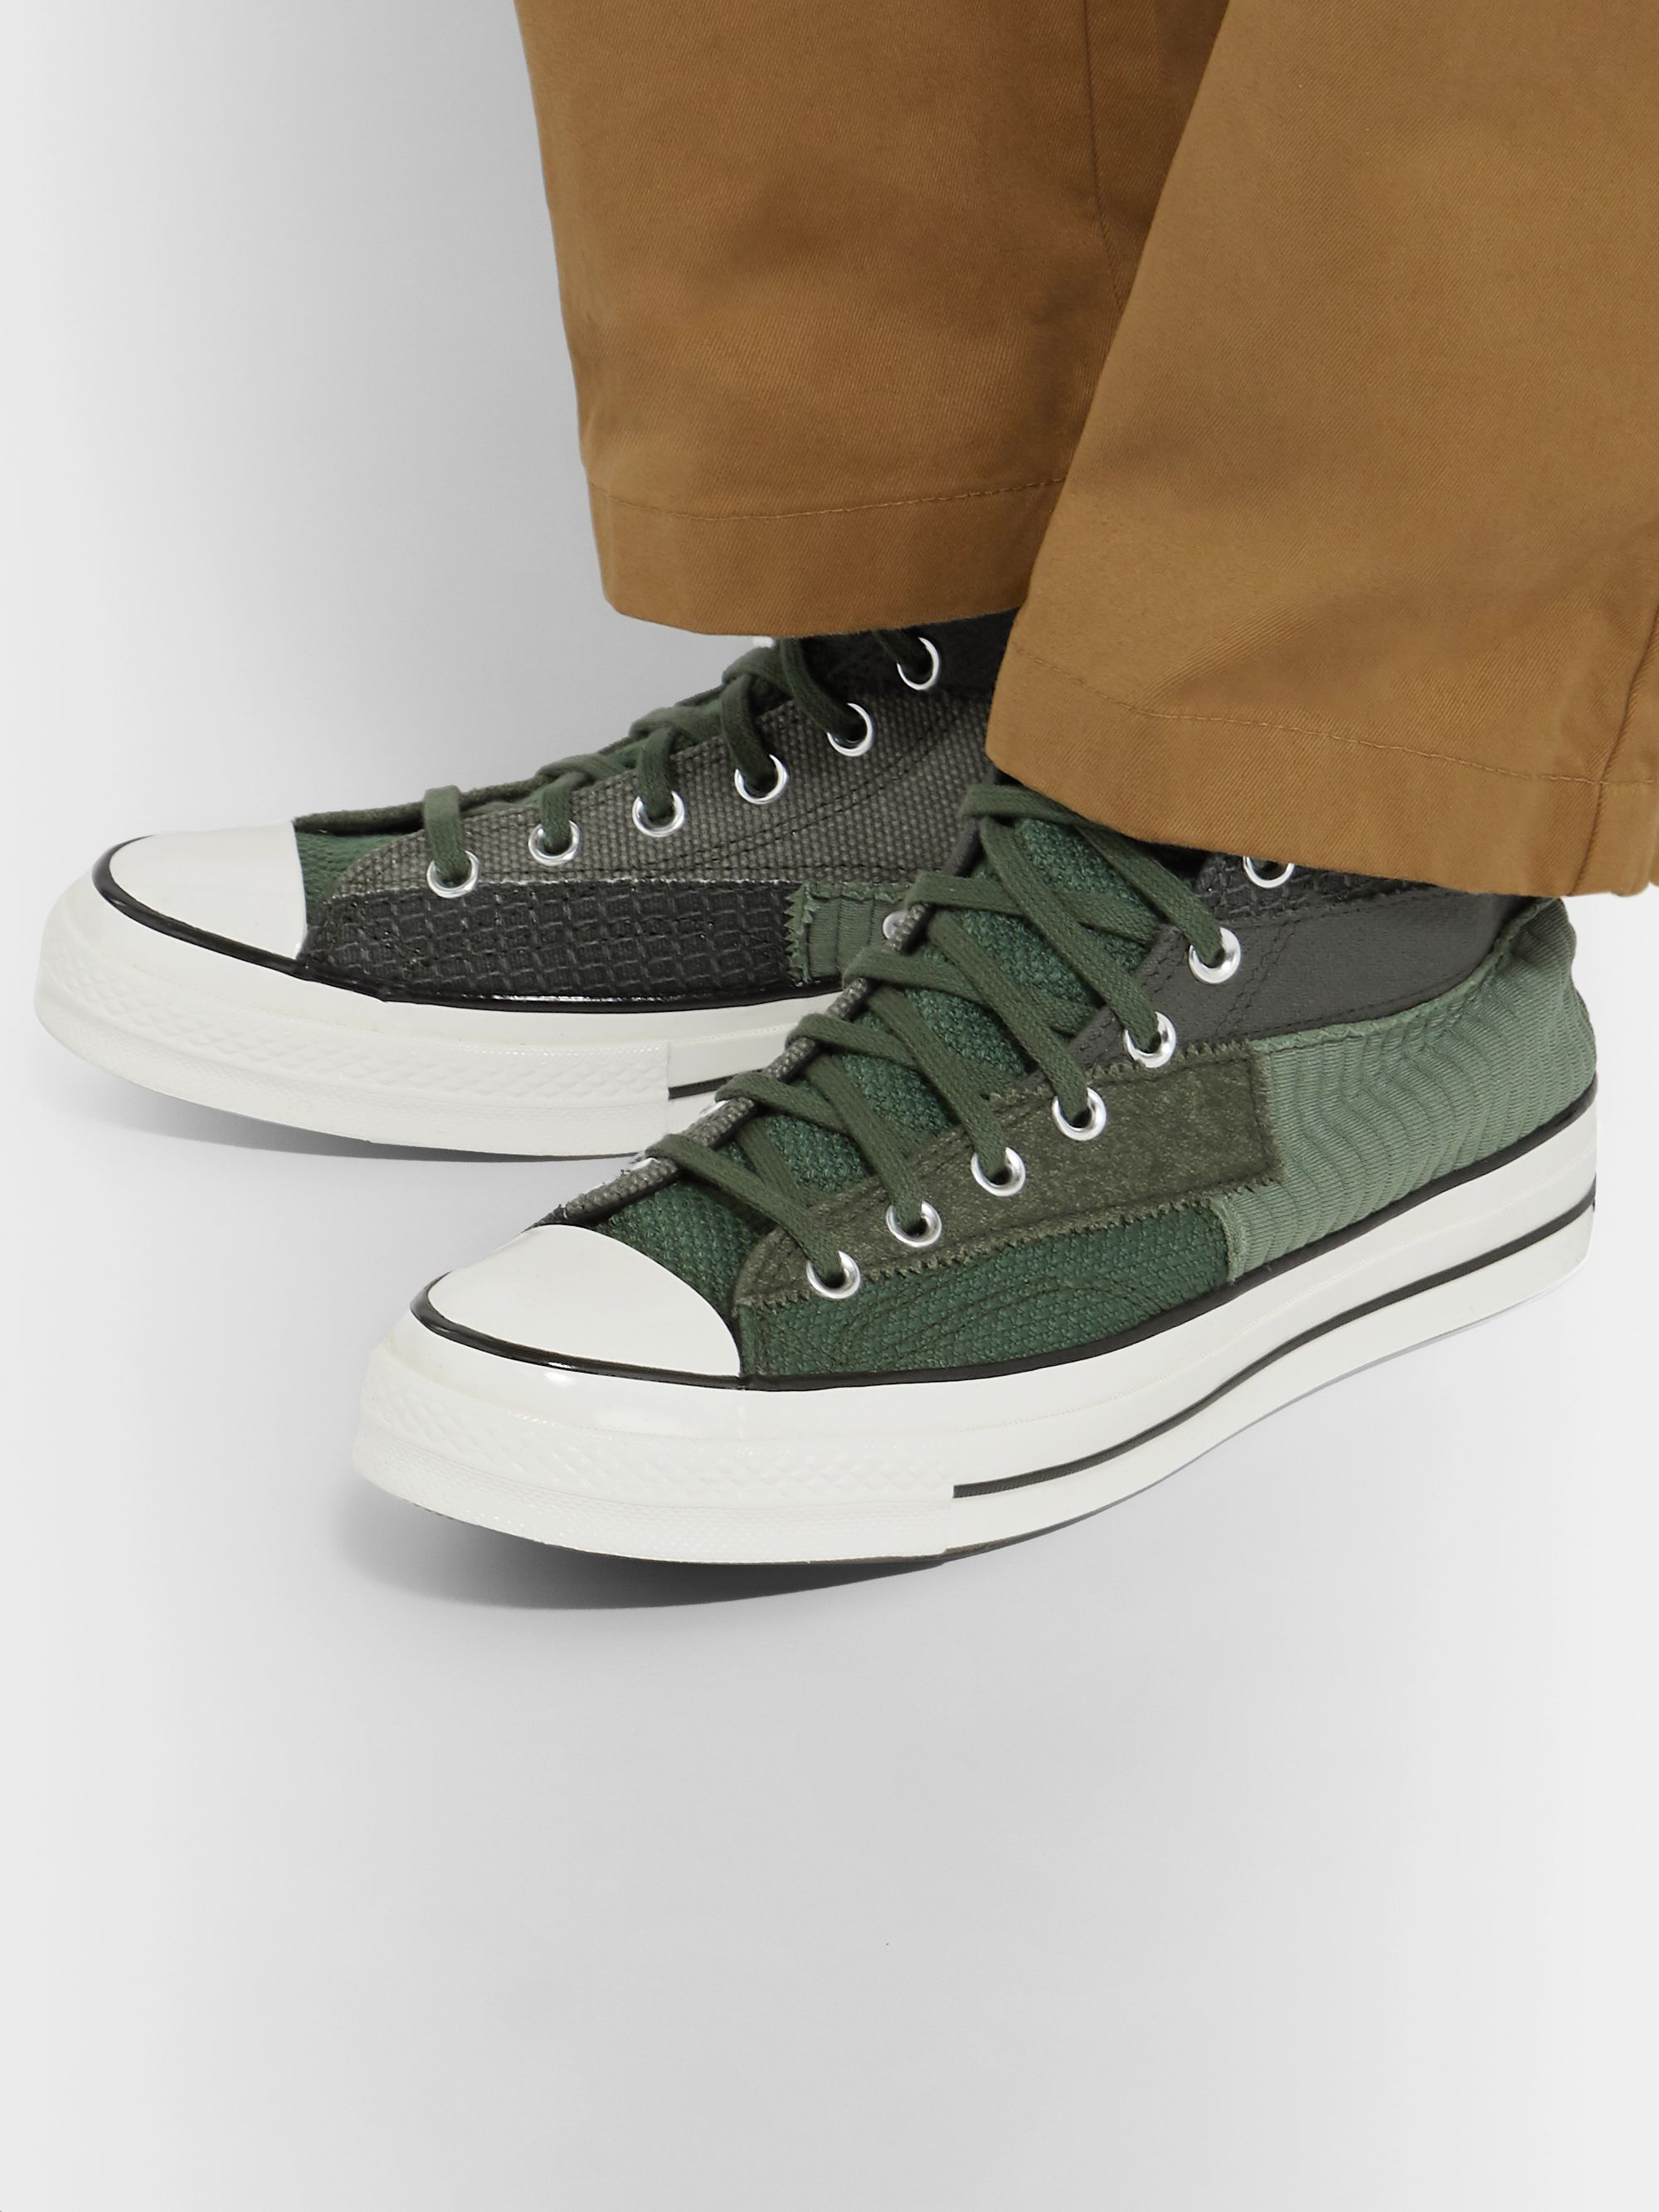 Chuck 70 Patchwork Canvas and Twill High Top Sneakers